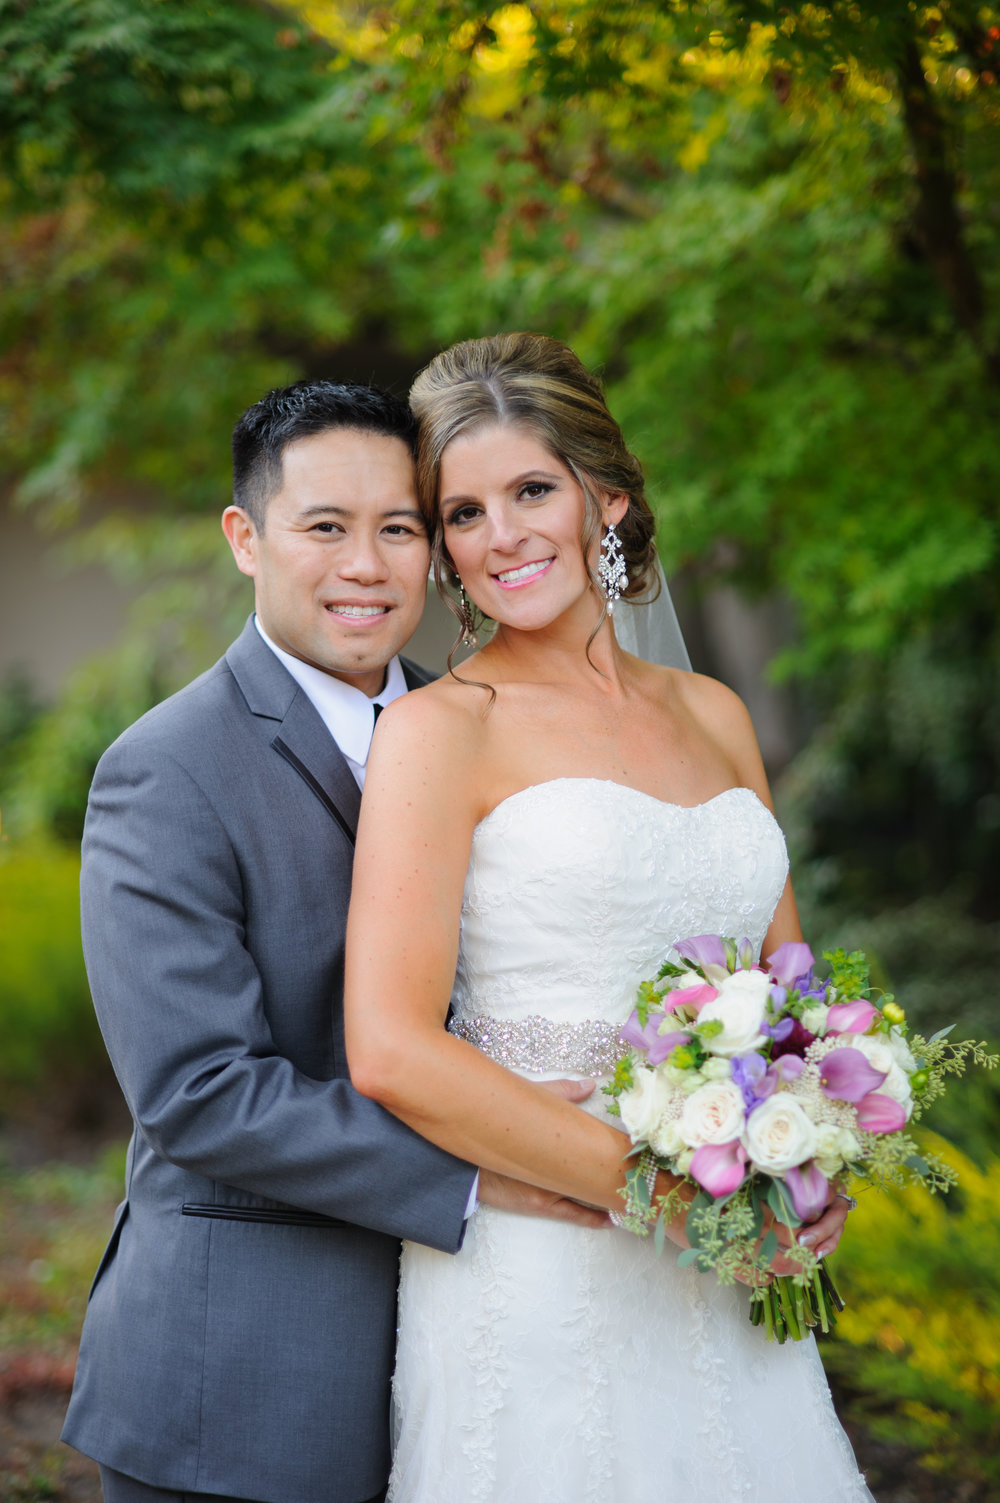 susan-brad-020-sacramento-wedding-photographer-katherine-nicole-photography.JPG